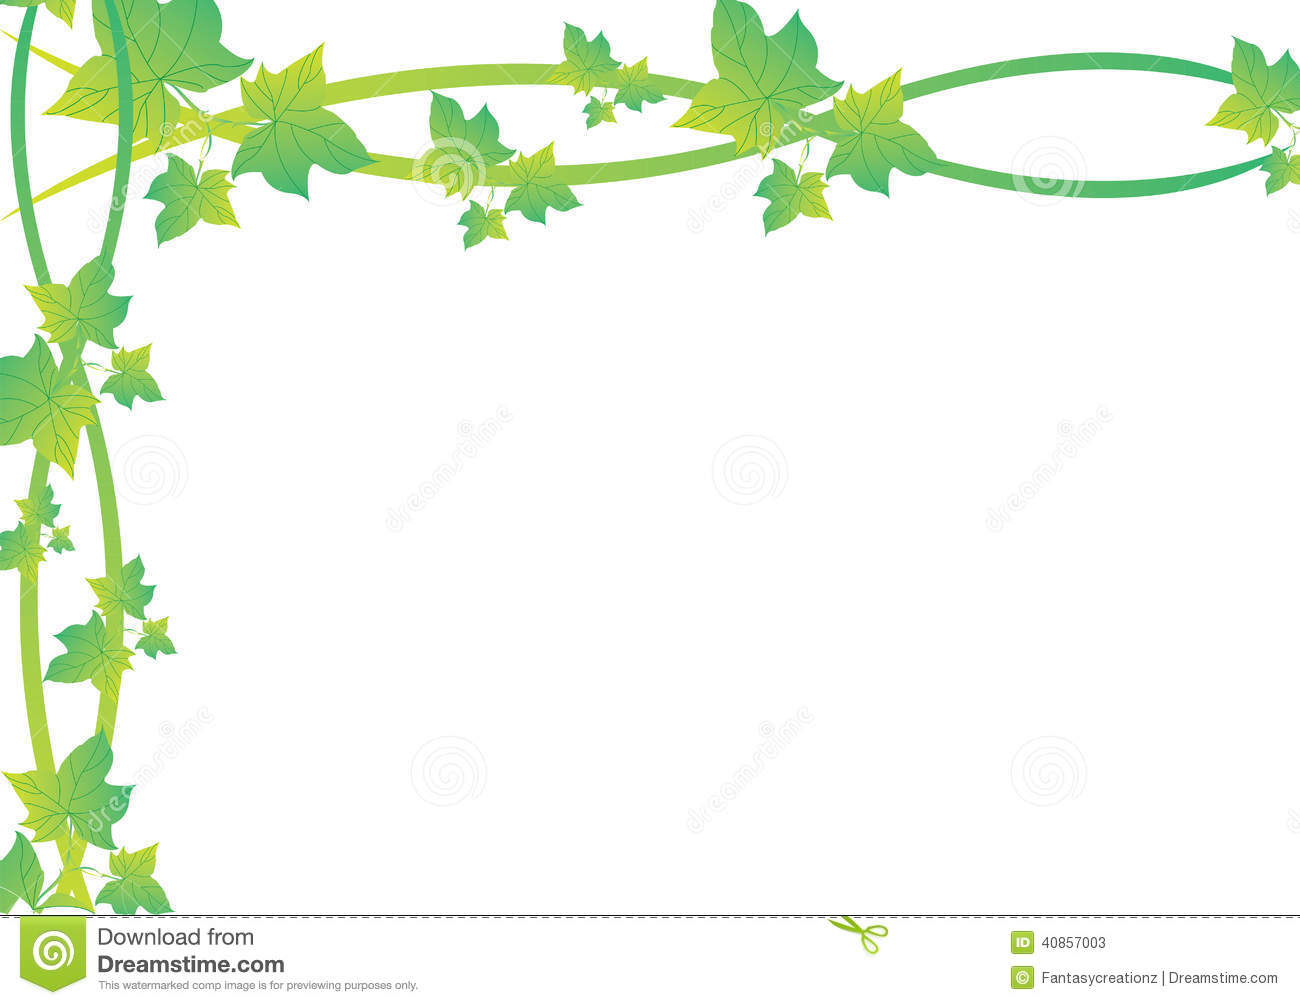 An illustration featuring a frame border of green vine leaves. Flower Vine Clipart